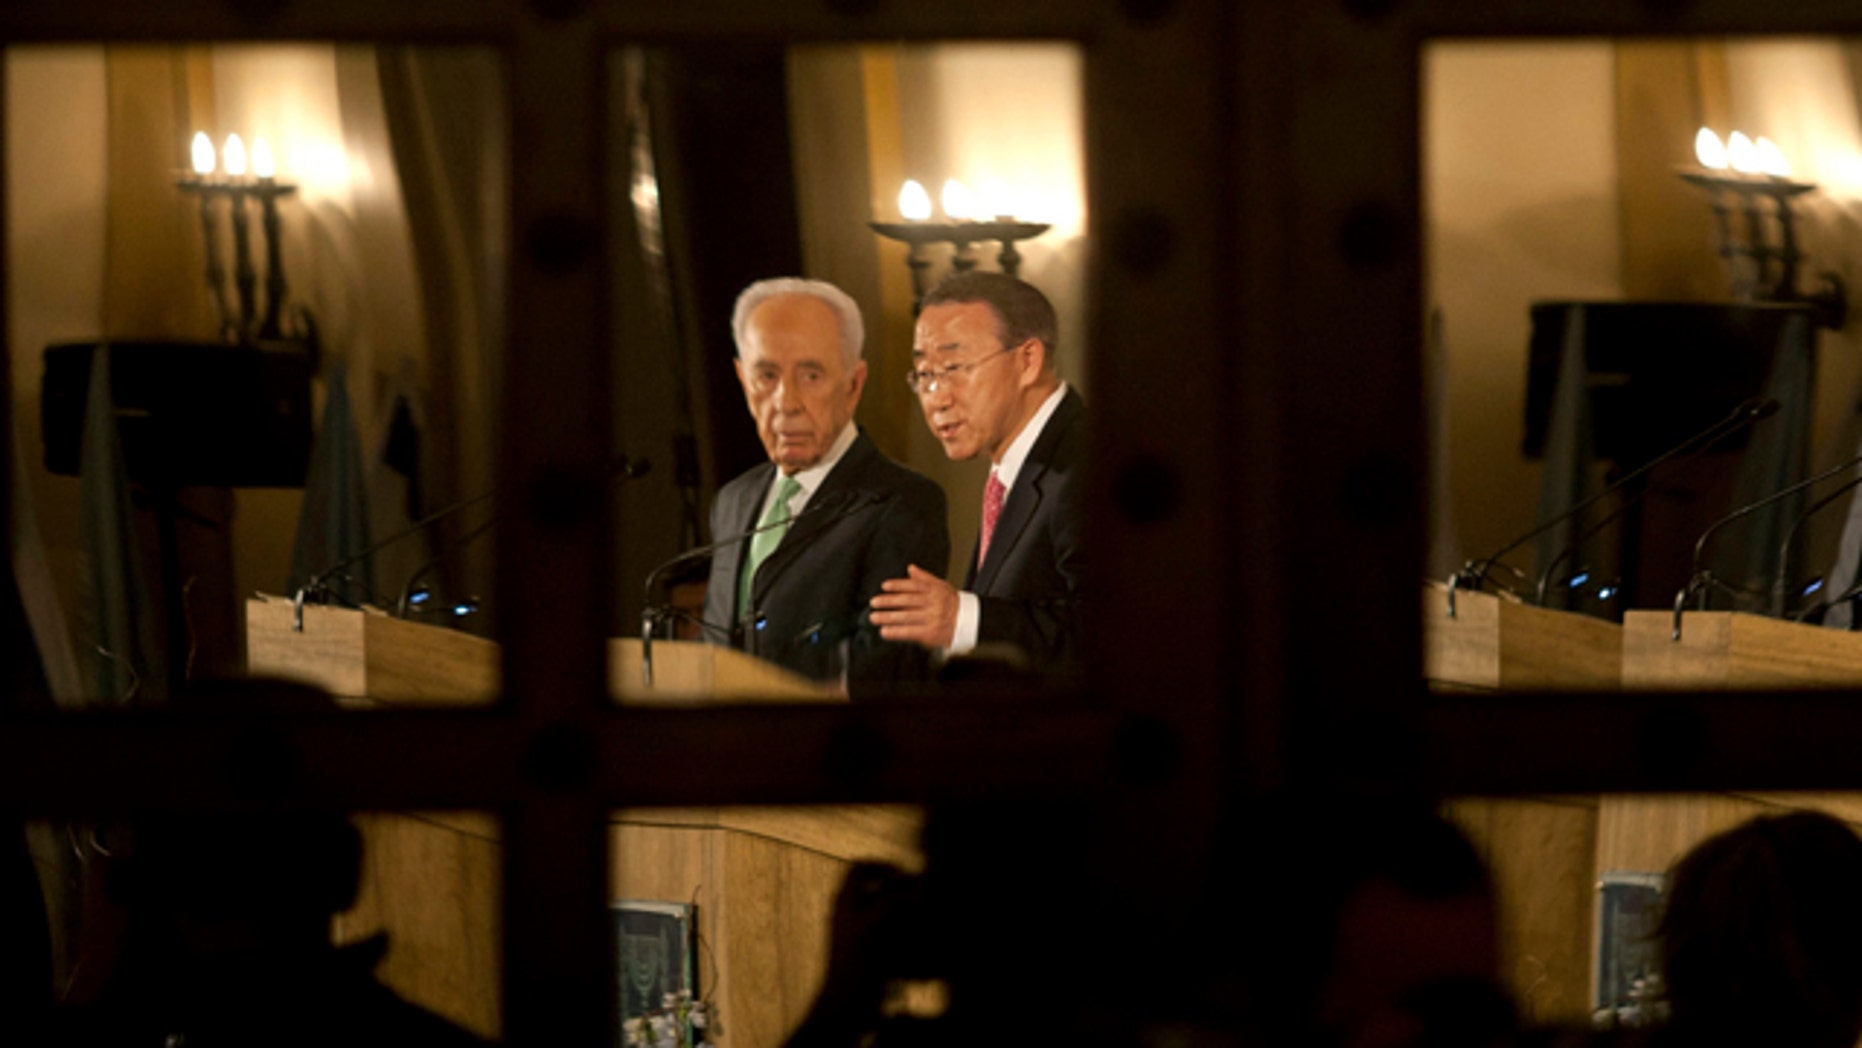 Feb. 1: Israel's President Shimon Peres, left, and United Nations Secretary General Ban Ki-moon are seen reflected in a door's mirror as they speak at a Jerusalem hotel.